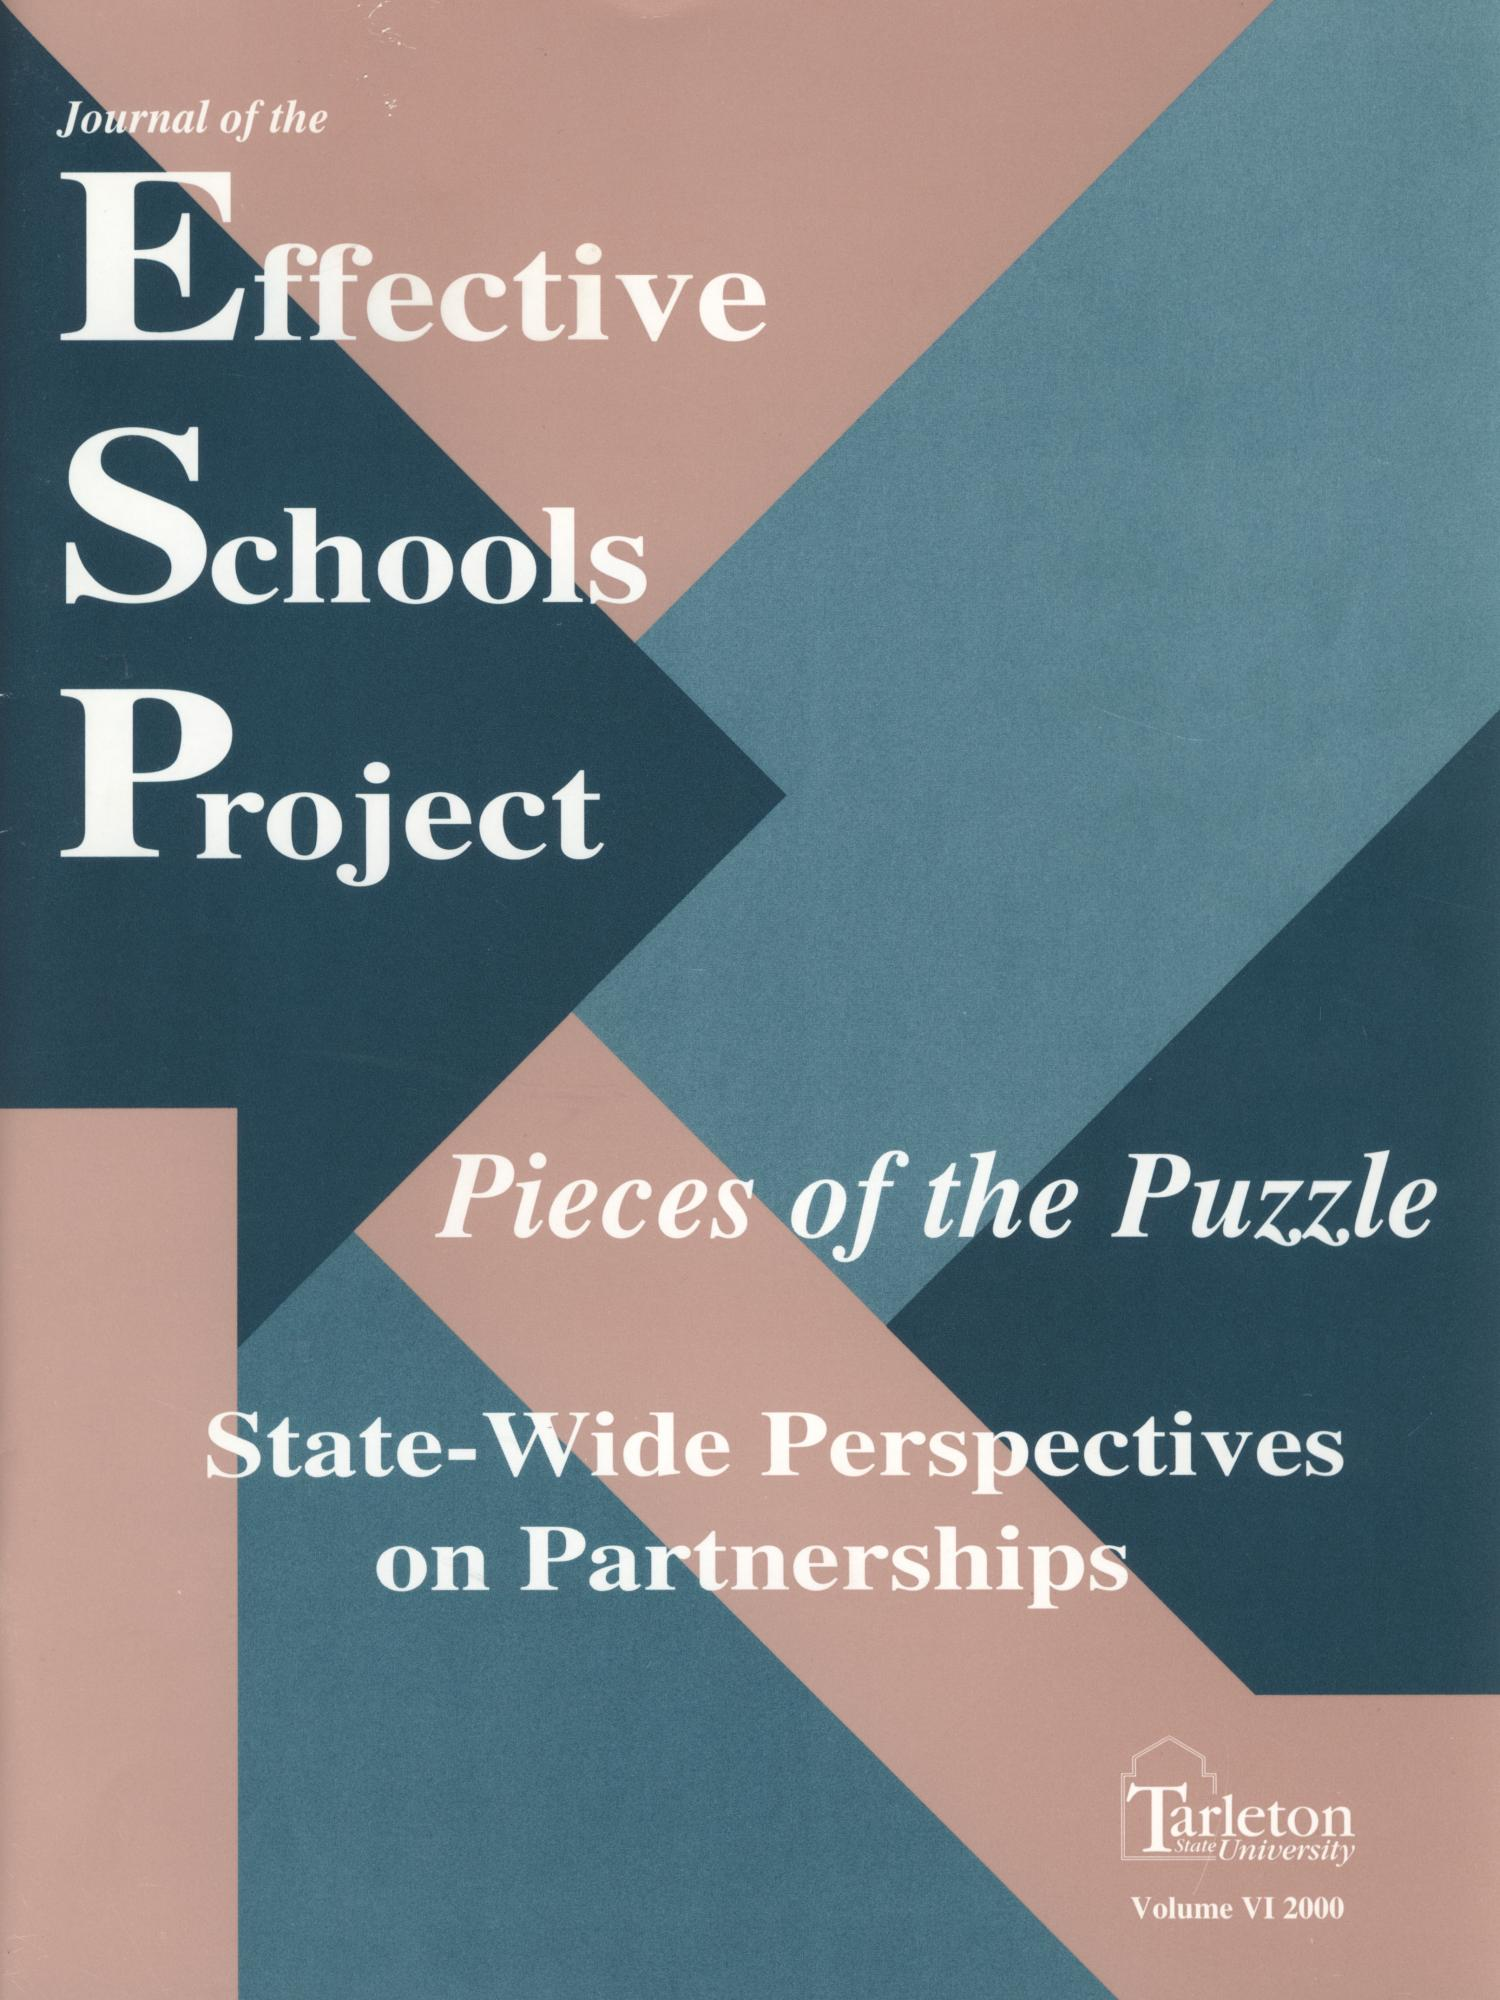 Journal of the Effective Schools Project, Volume 6, 2000                                                                                                      Front Cover